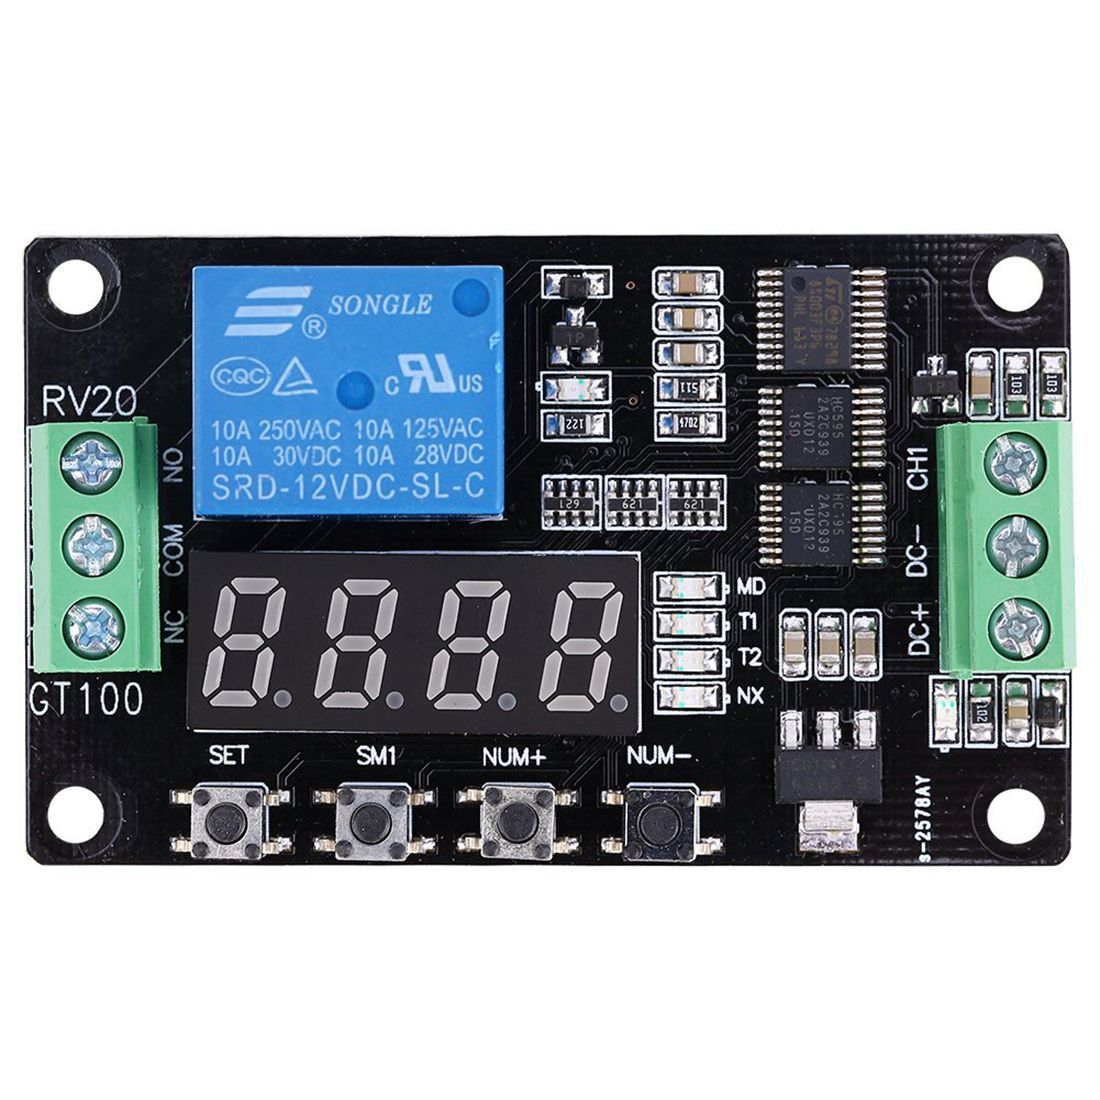 Multifunction Relay Cycle Timer Module,Self-lock Relay PLC Cycle Timer Module Switch Board Power Switch Home Automation Delay 1pc multifunction self lock relay dc 5v plc cycle timer module delay time relay